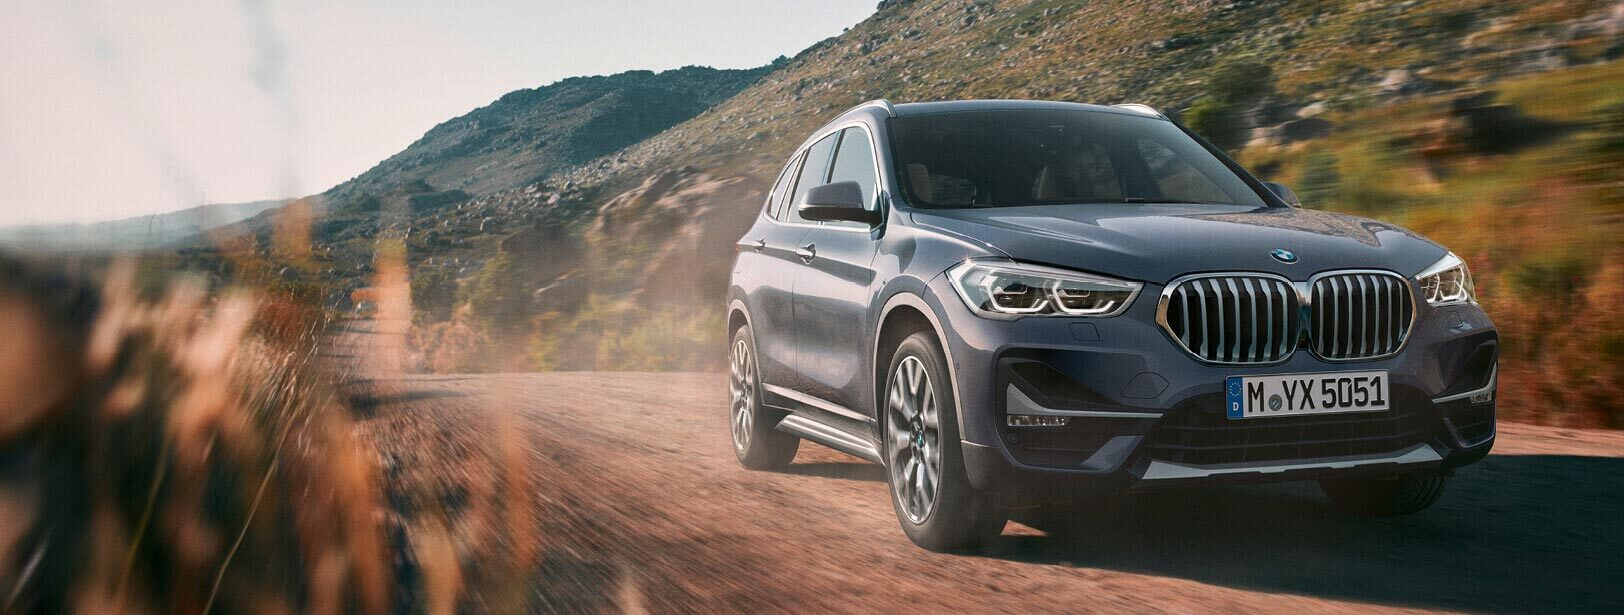 THE X1: Der BMW X1 sDrive18i